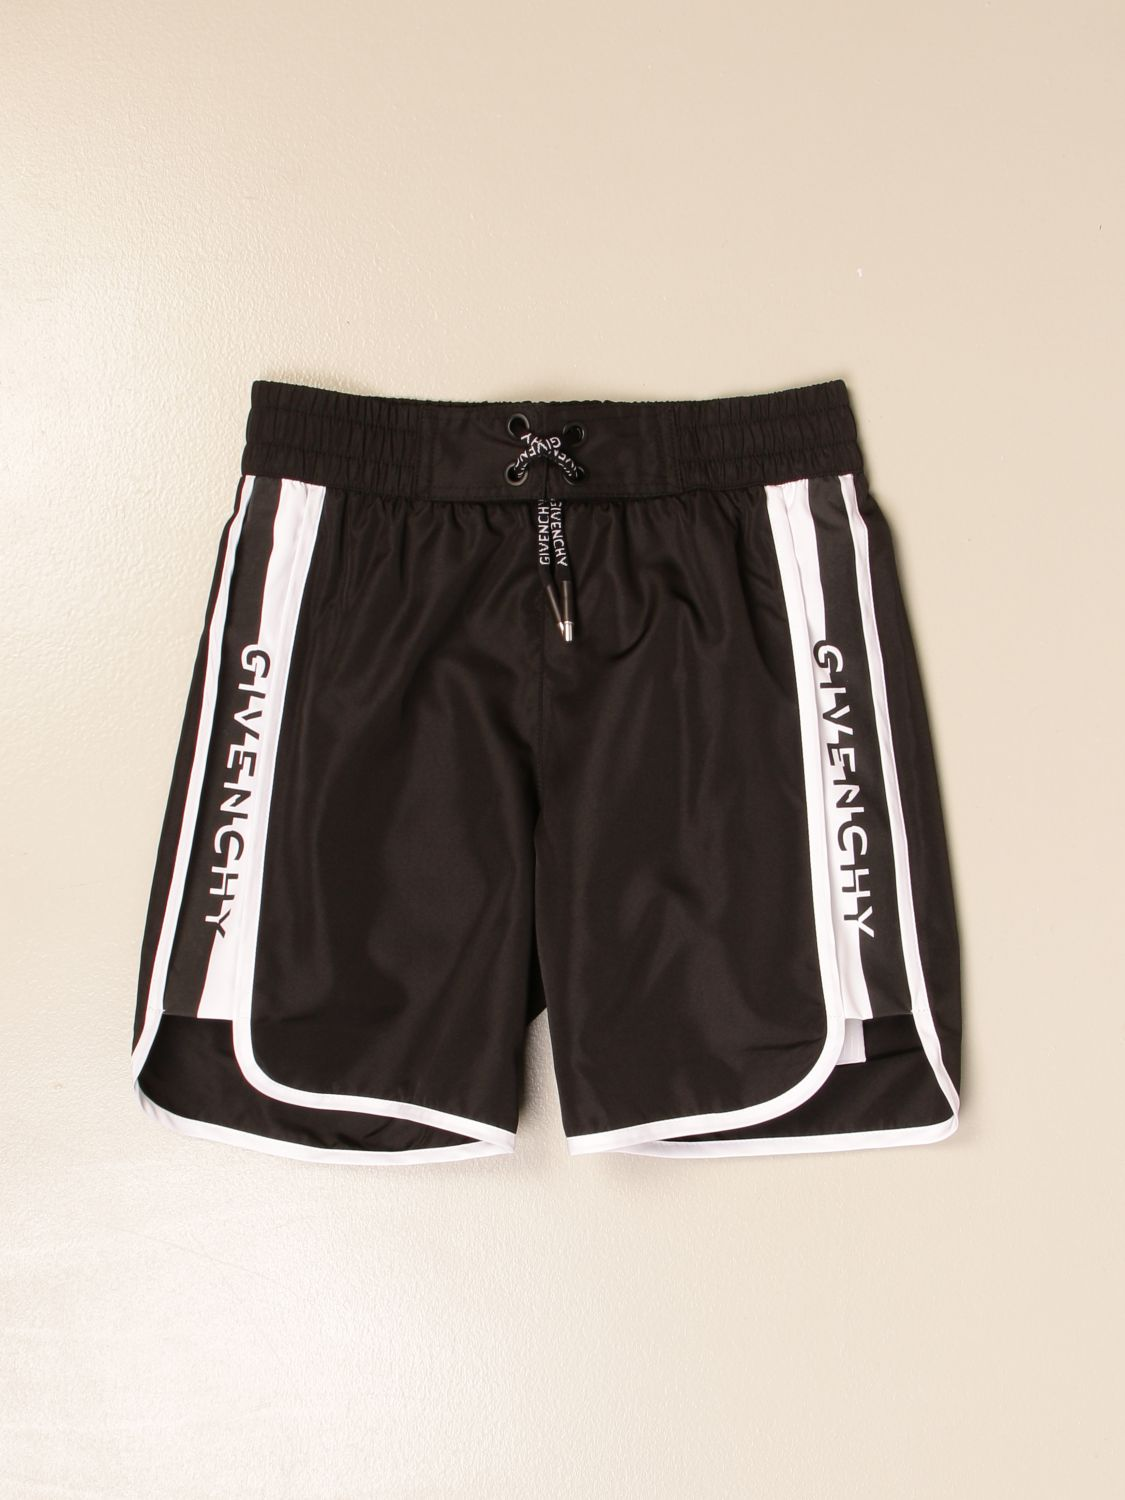 Swimsuit Givenchy: Givenchy boxer swimsuit with logoed bands black 1